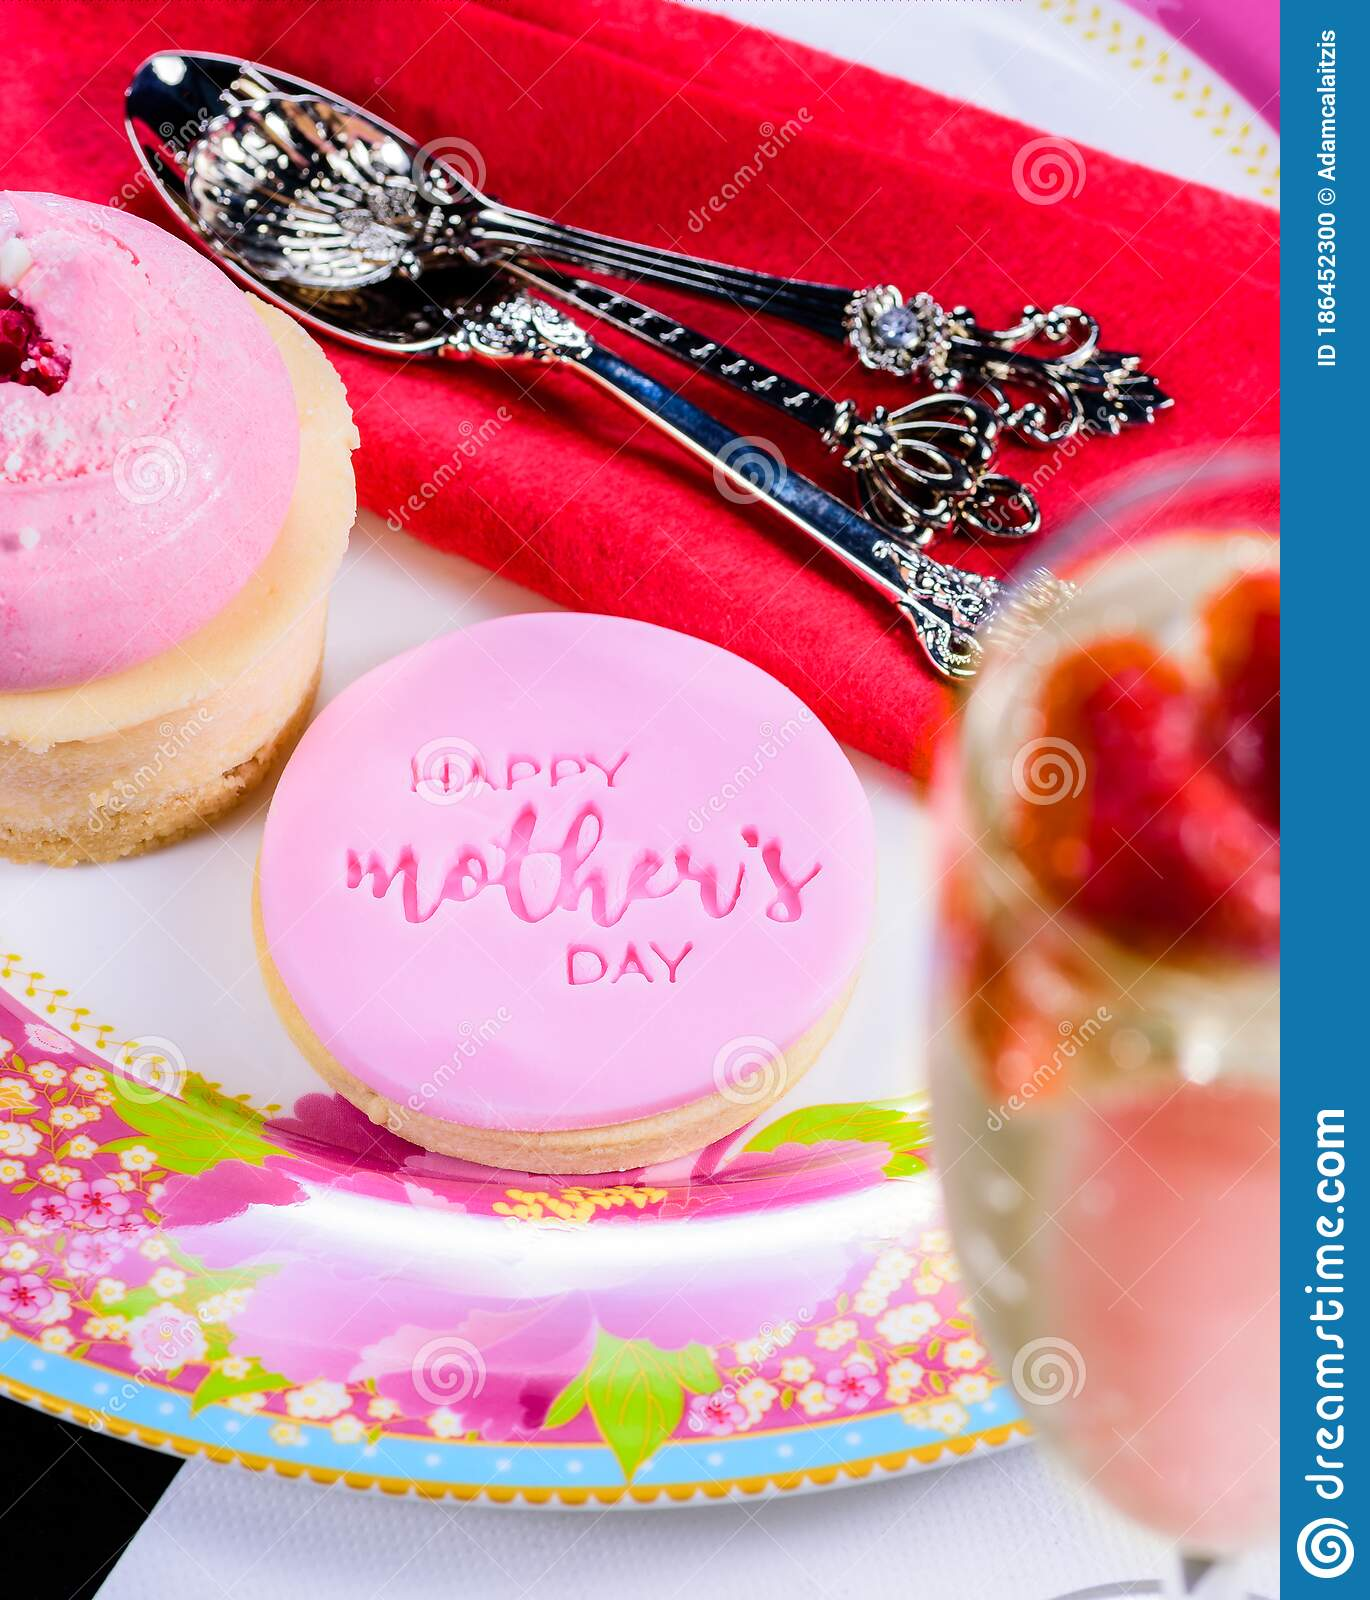 Mother S Day Cookie Stock Photo Image Of Cute Icing 186452300